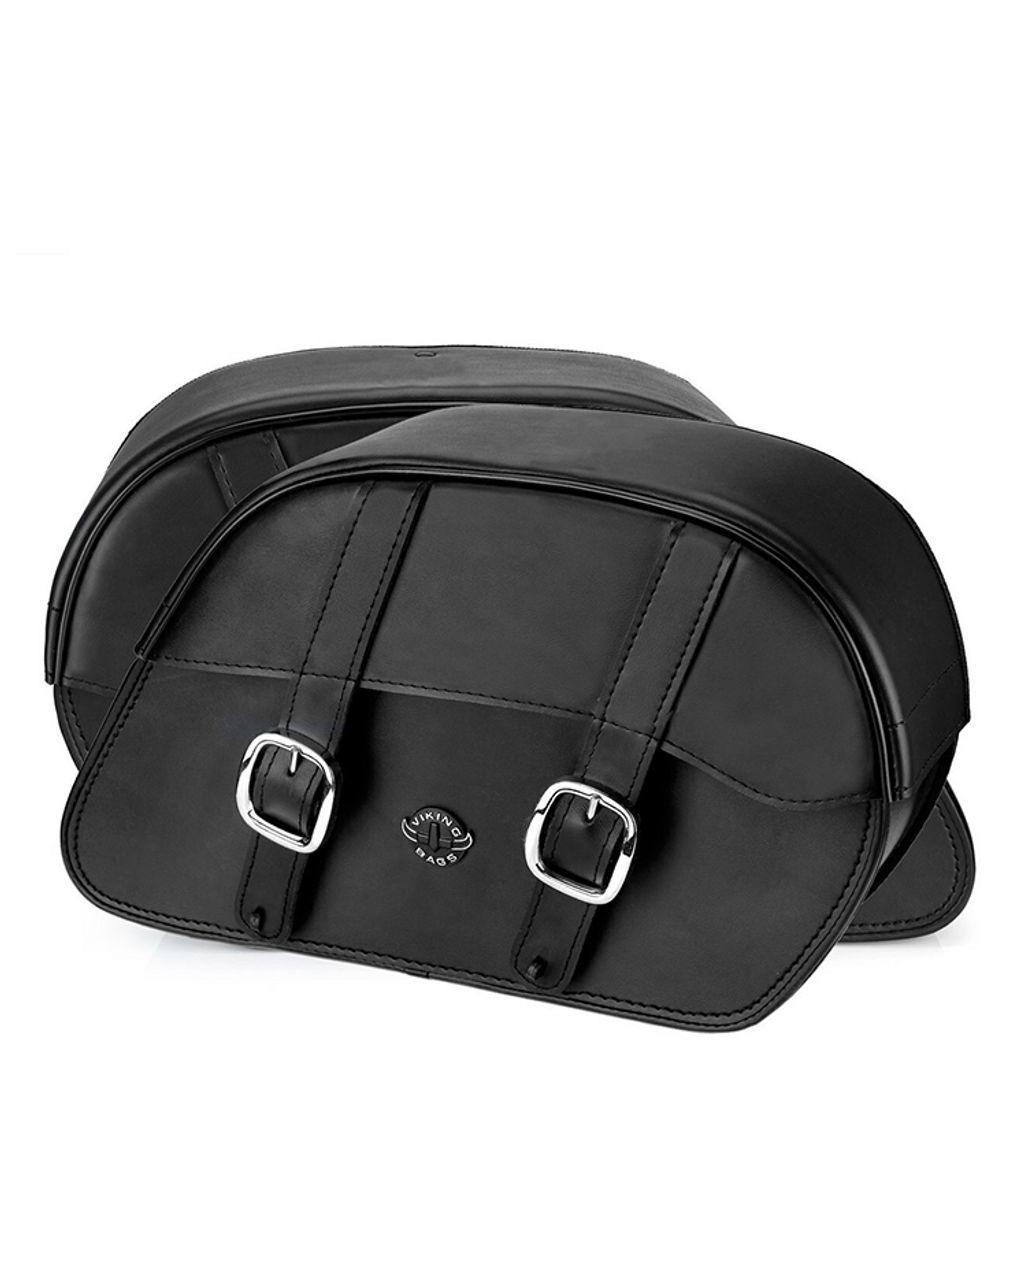 Viking Slanted Medium Motorcycle Saddlebags For Harley Softail Fat Boy Lo Both Bags  View